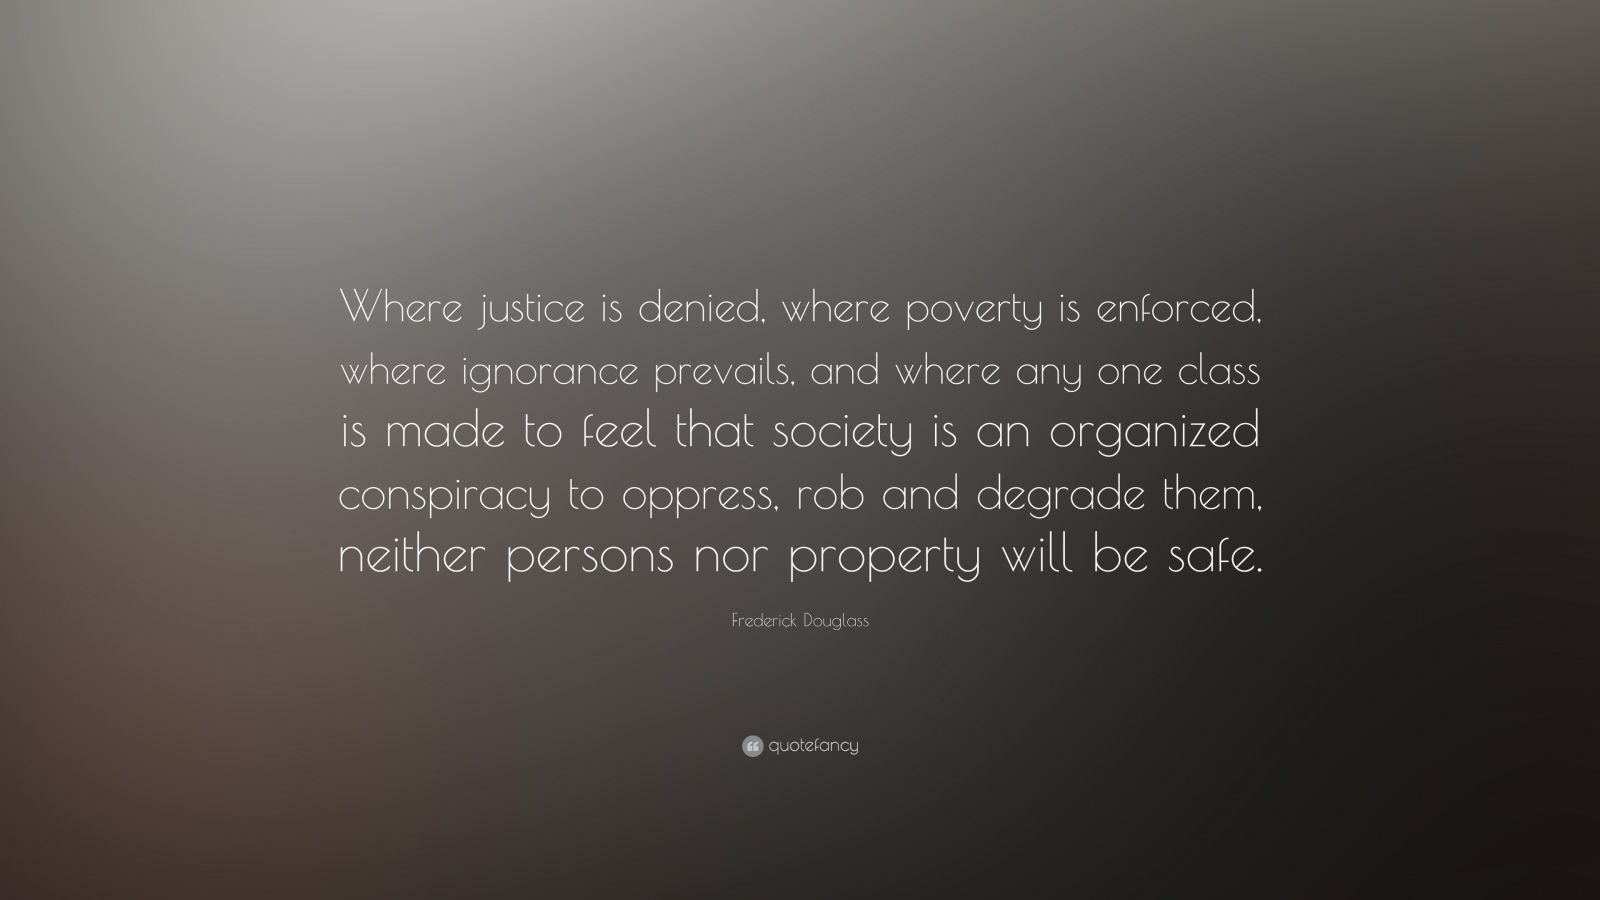 "Frederick Douglass Quote: ""Where justice is denied, where poverty is enforced, where ignorance prevails, and where any one class is made to feel that society is an organized conspiracy to oppress, rob and degrade them, neither persons nor property will be safe."""